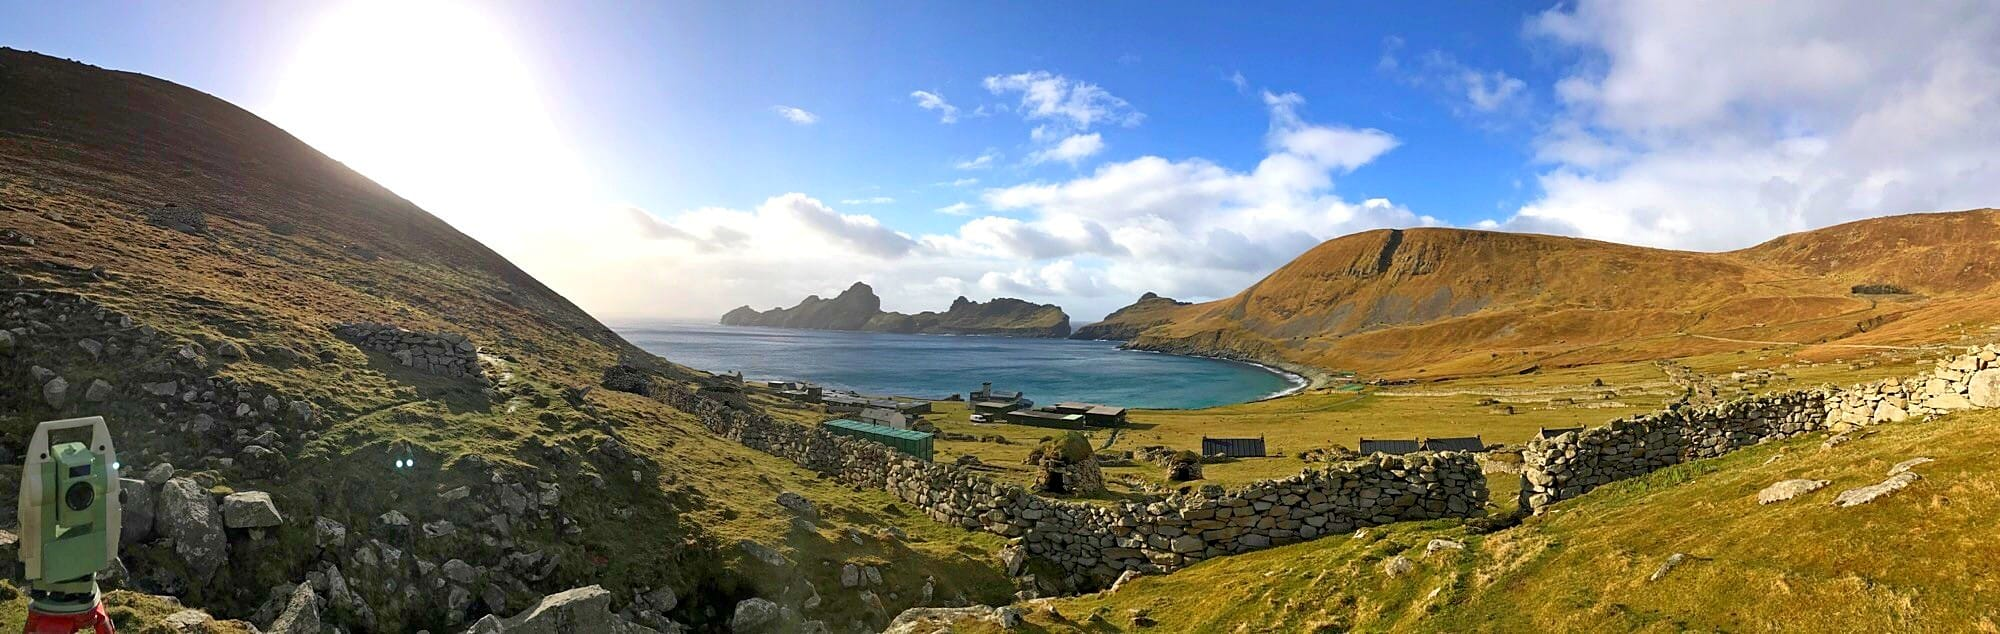 St Kilda monitoring surveys